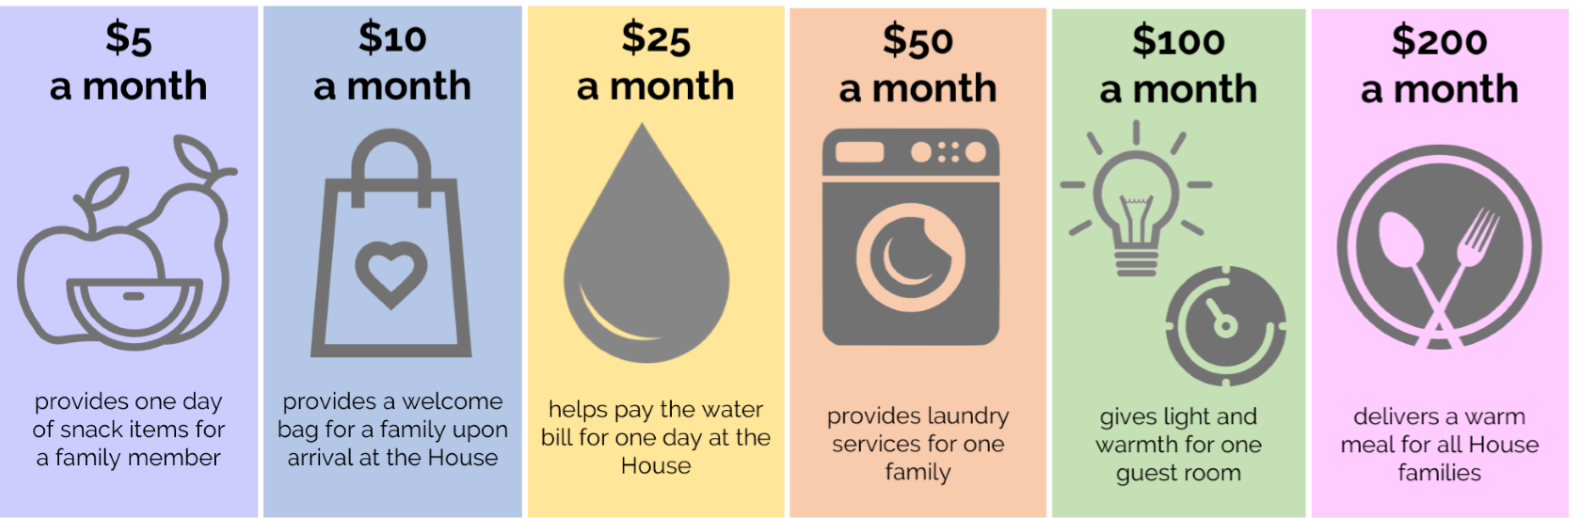 Hereos of the House donation increments image